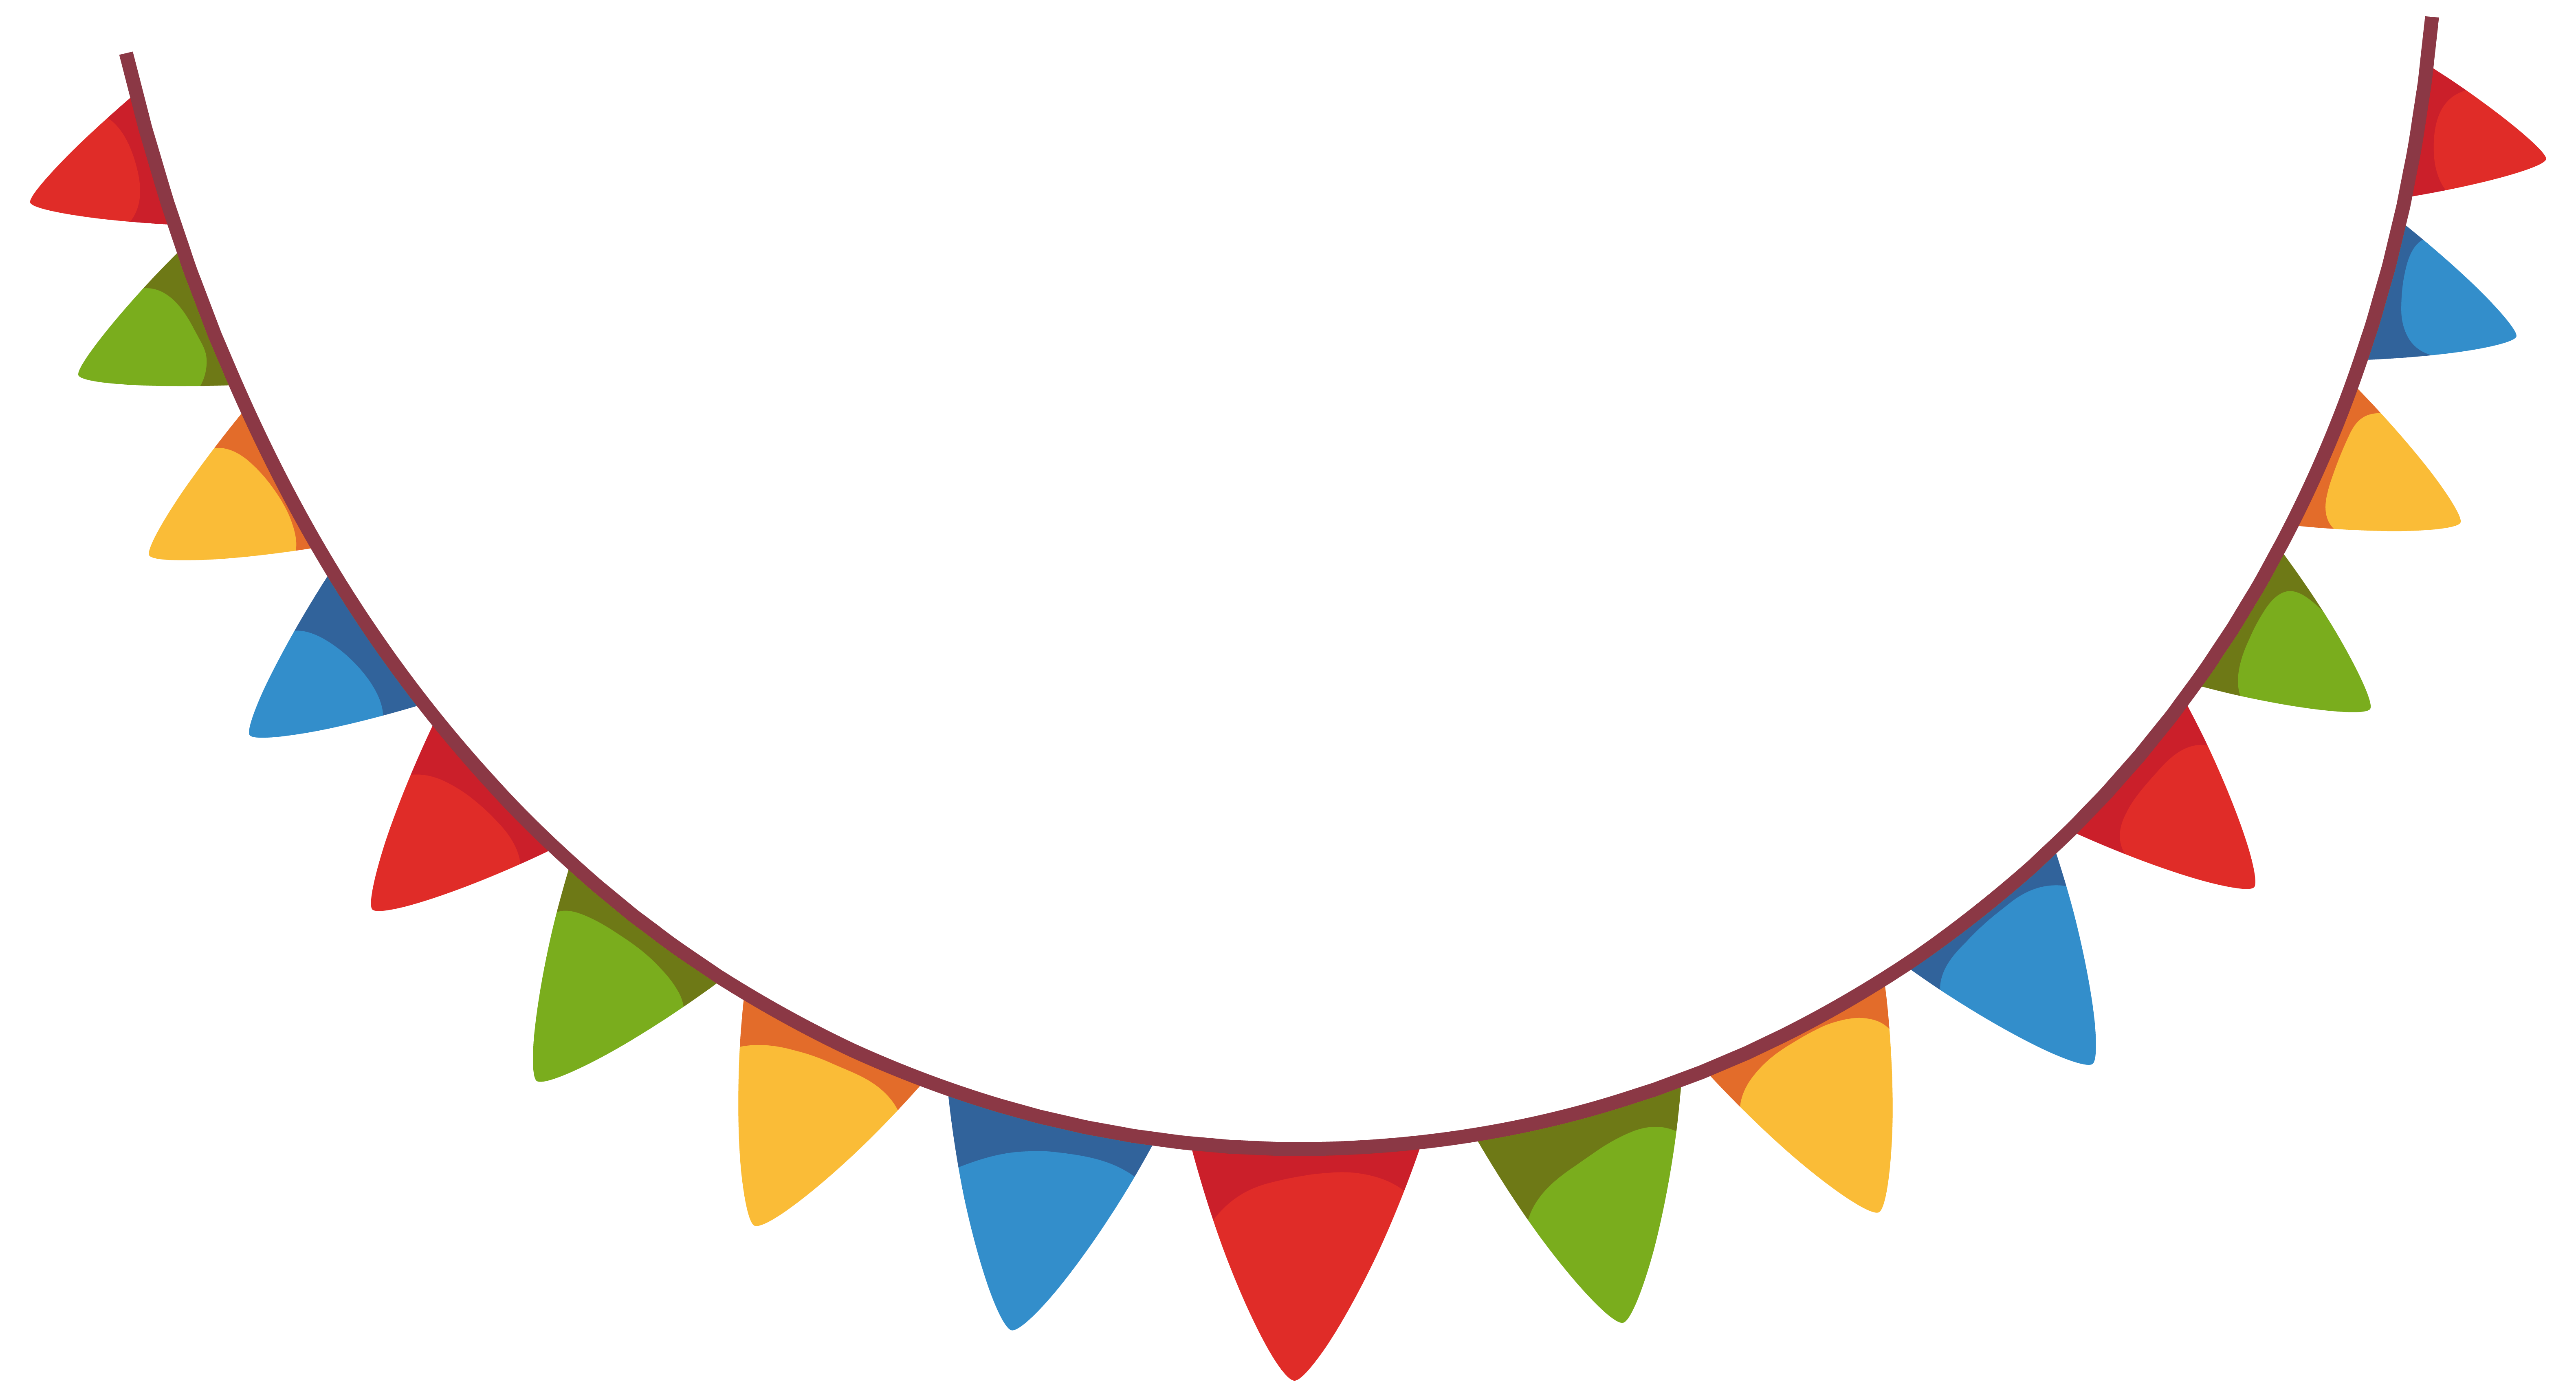 Party banners png. Streamer decoration clipart picture